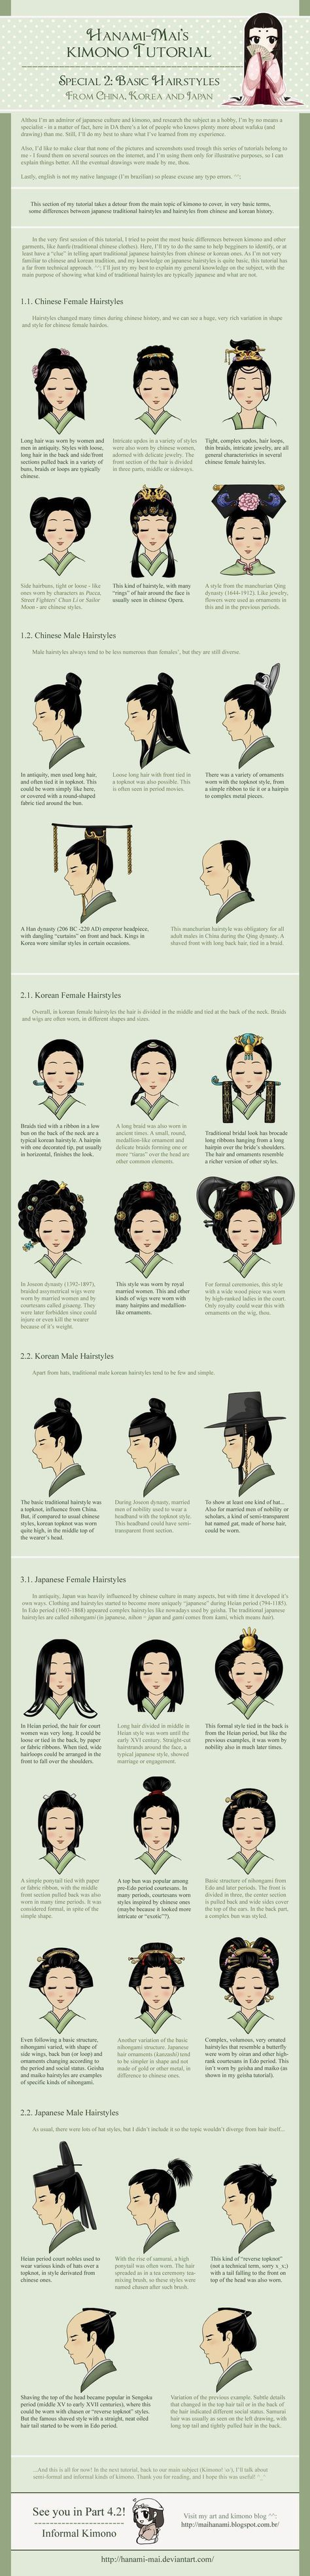 Kimono Tutorial - Hairstyles Special by Hanami-Mai.deviantart.com on @deviantART - Differences between Chinese, Korean, and Japanese hairstyles - I often see them getting mixed up in artwork, costumes, etc., so I'm glad to see a resource like this.